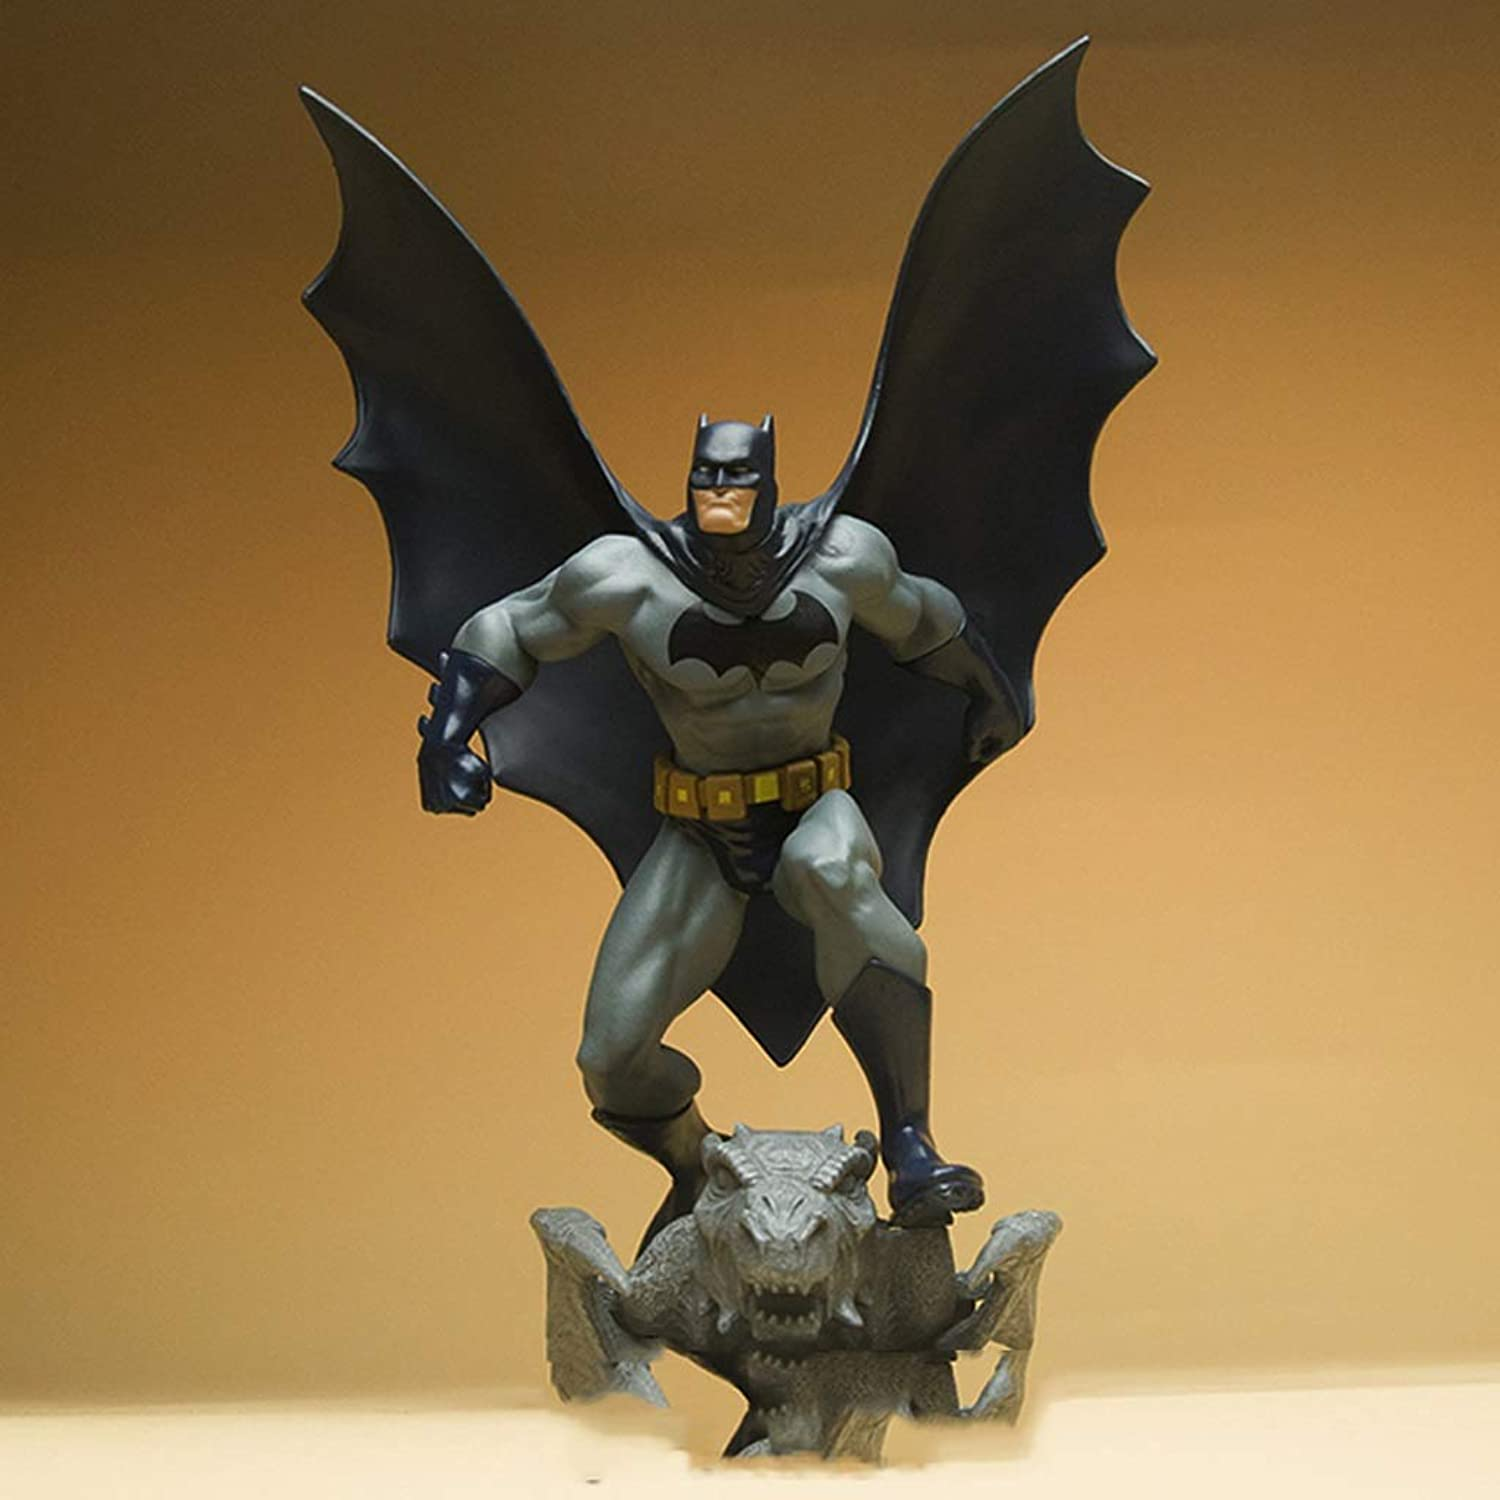 Hzpxsb Toy Model DC Universe Batman Batman Static Statue Model Gift Decoration Toys